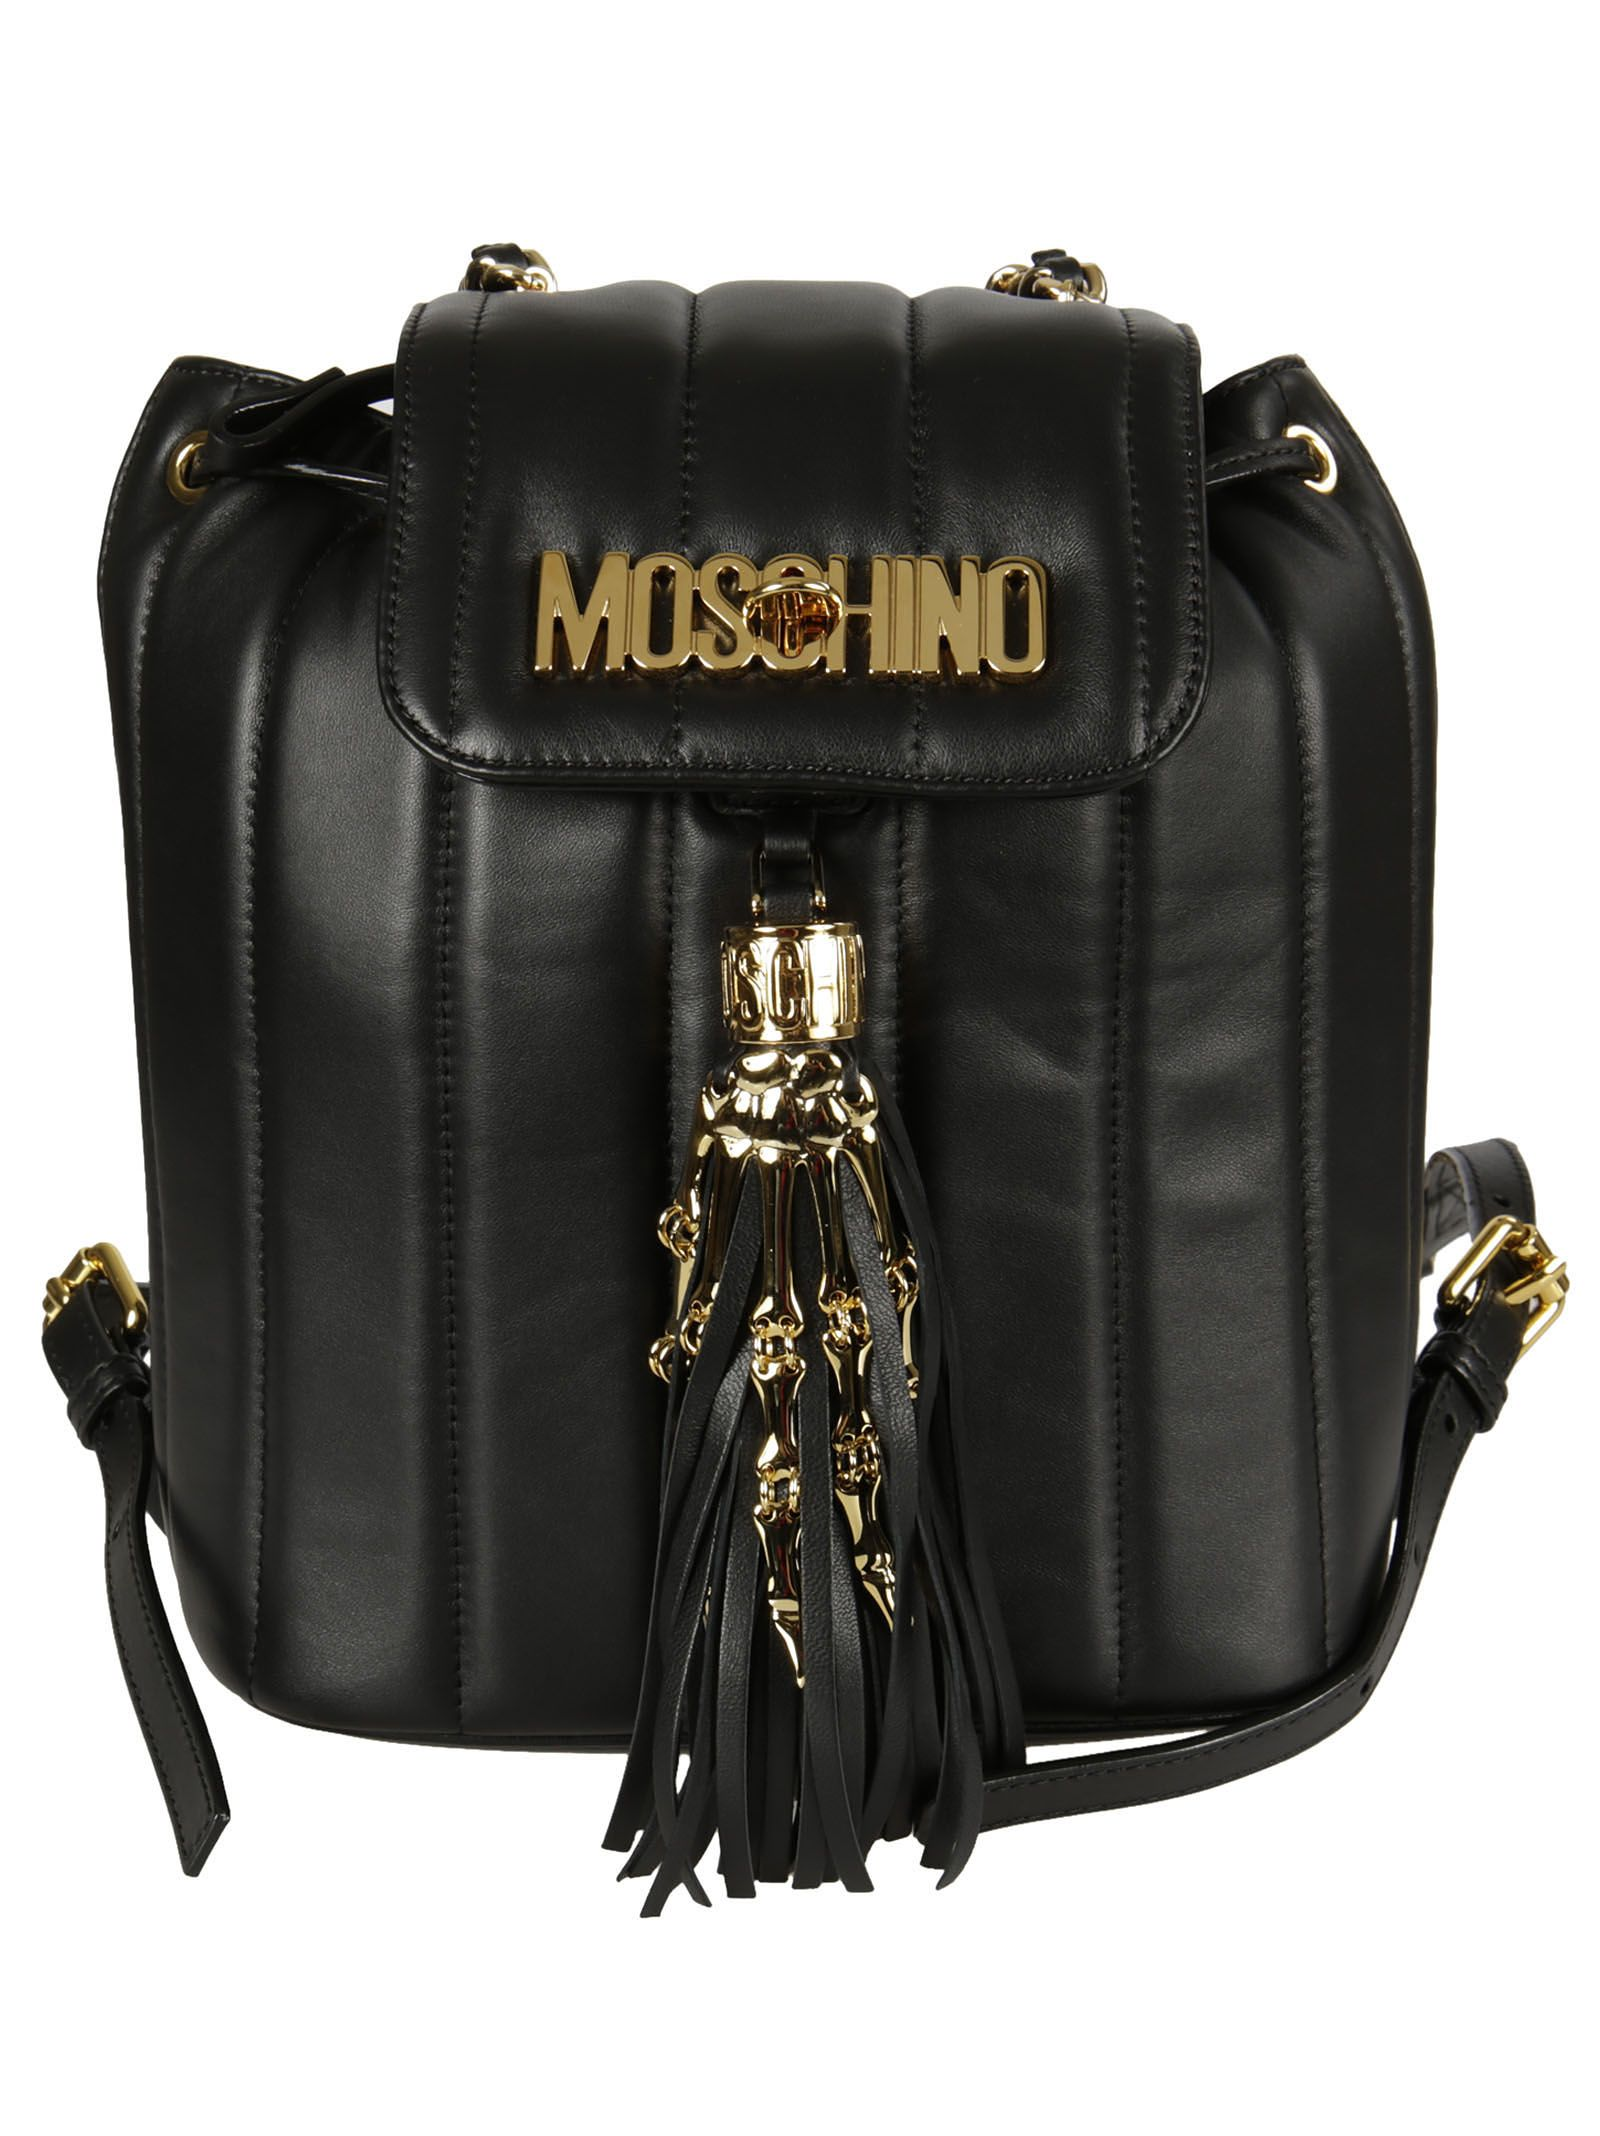 Logo Backpack from Moschino: Black Logo Backpack with solid colour, logo on front, framed closure and tassel design